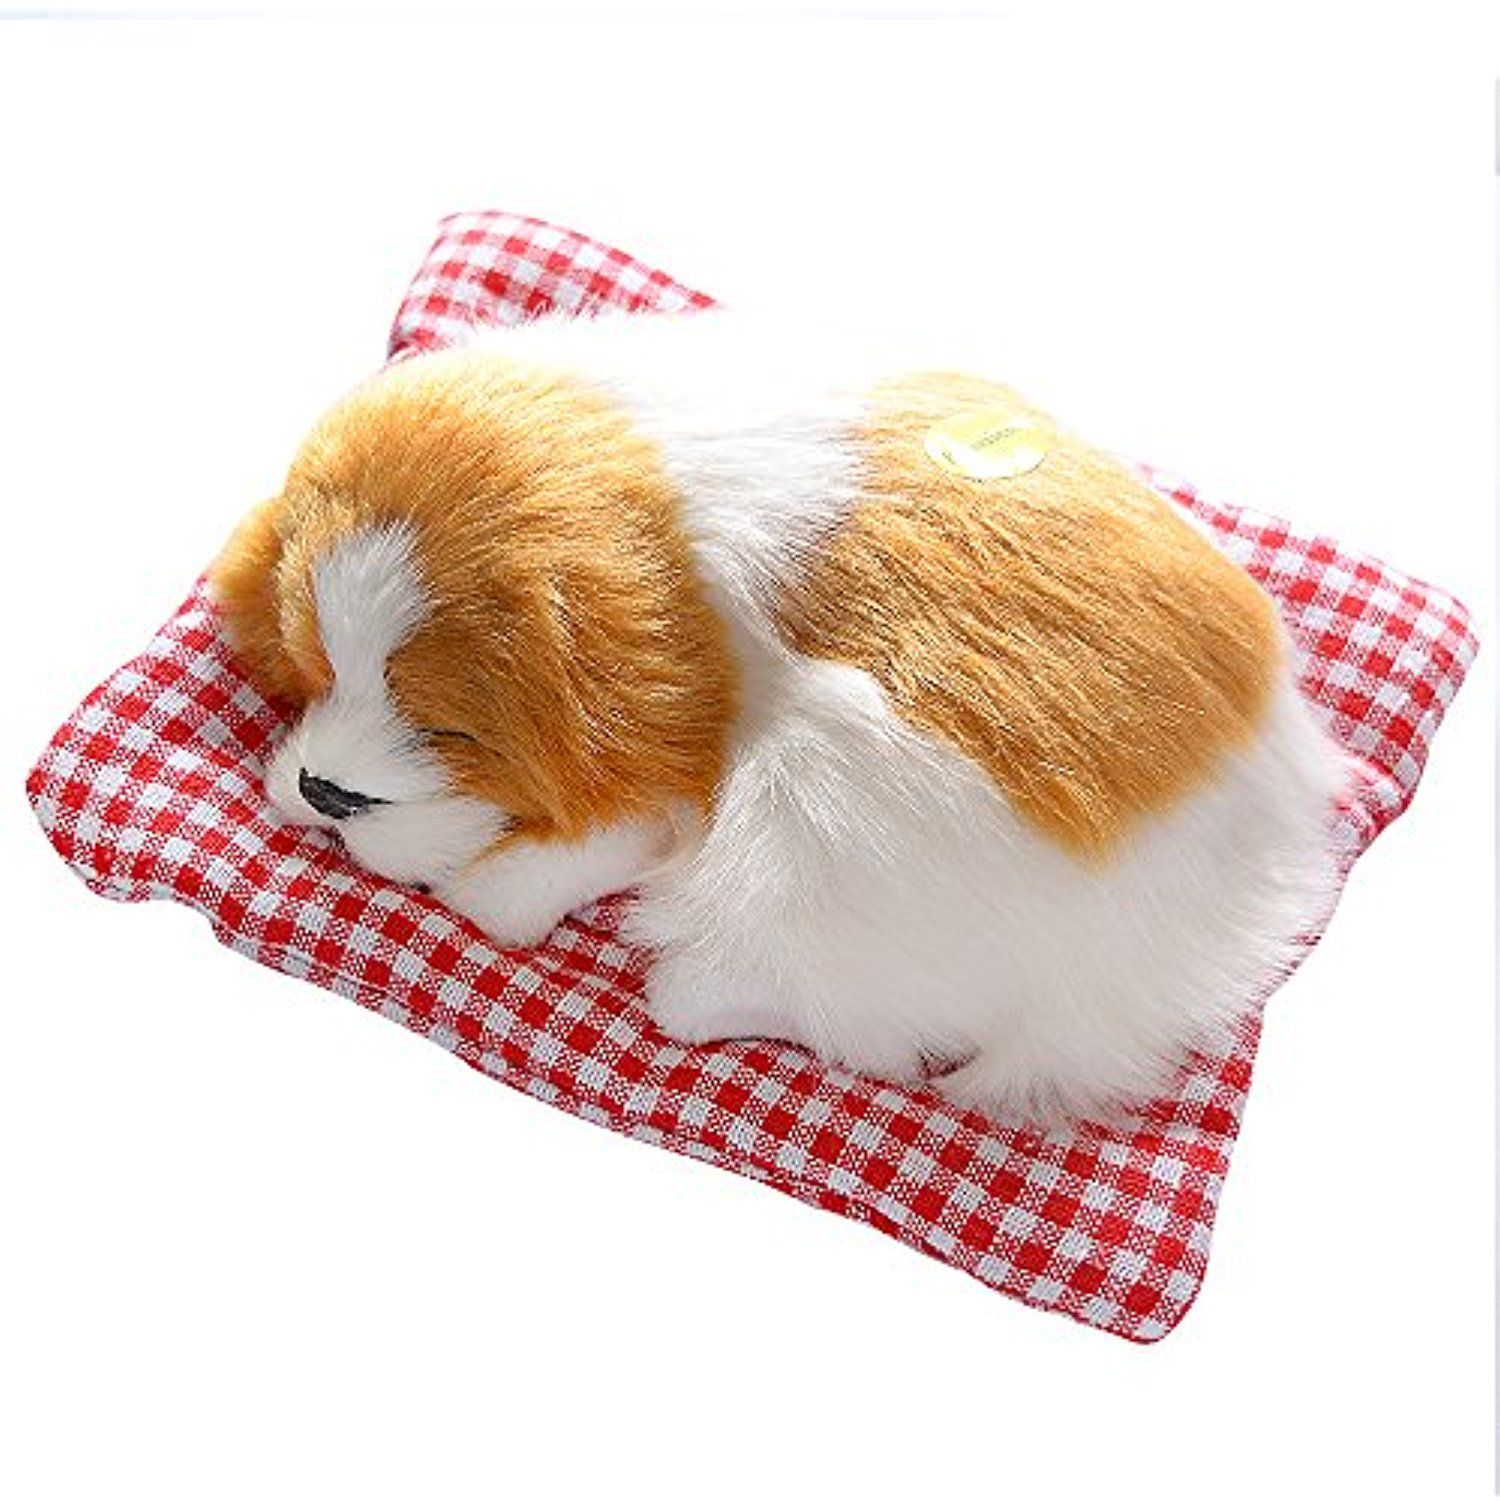 Toonol Vivid Simulation Plush Sleeping Dogs Doll Toy With Sound